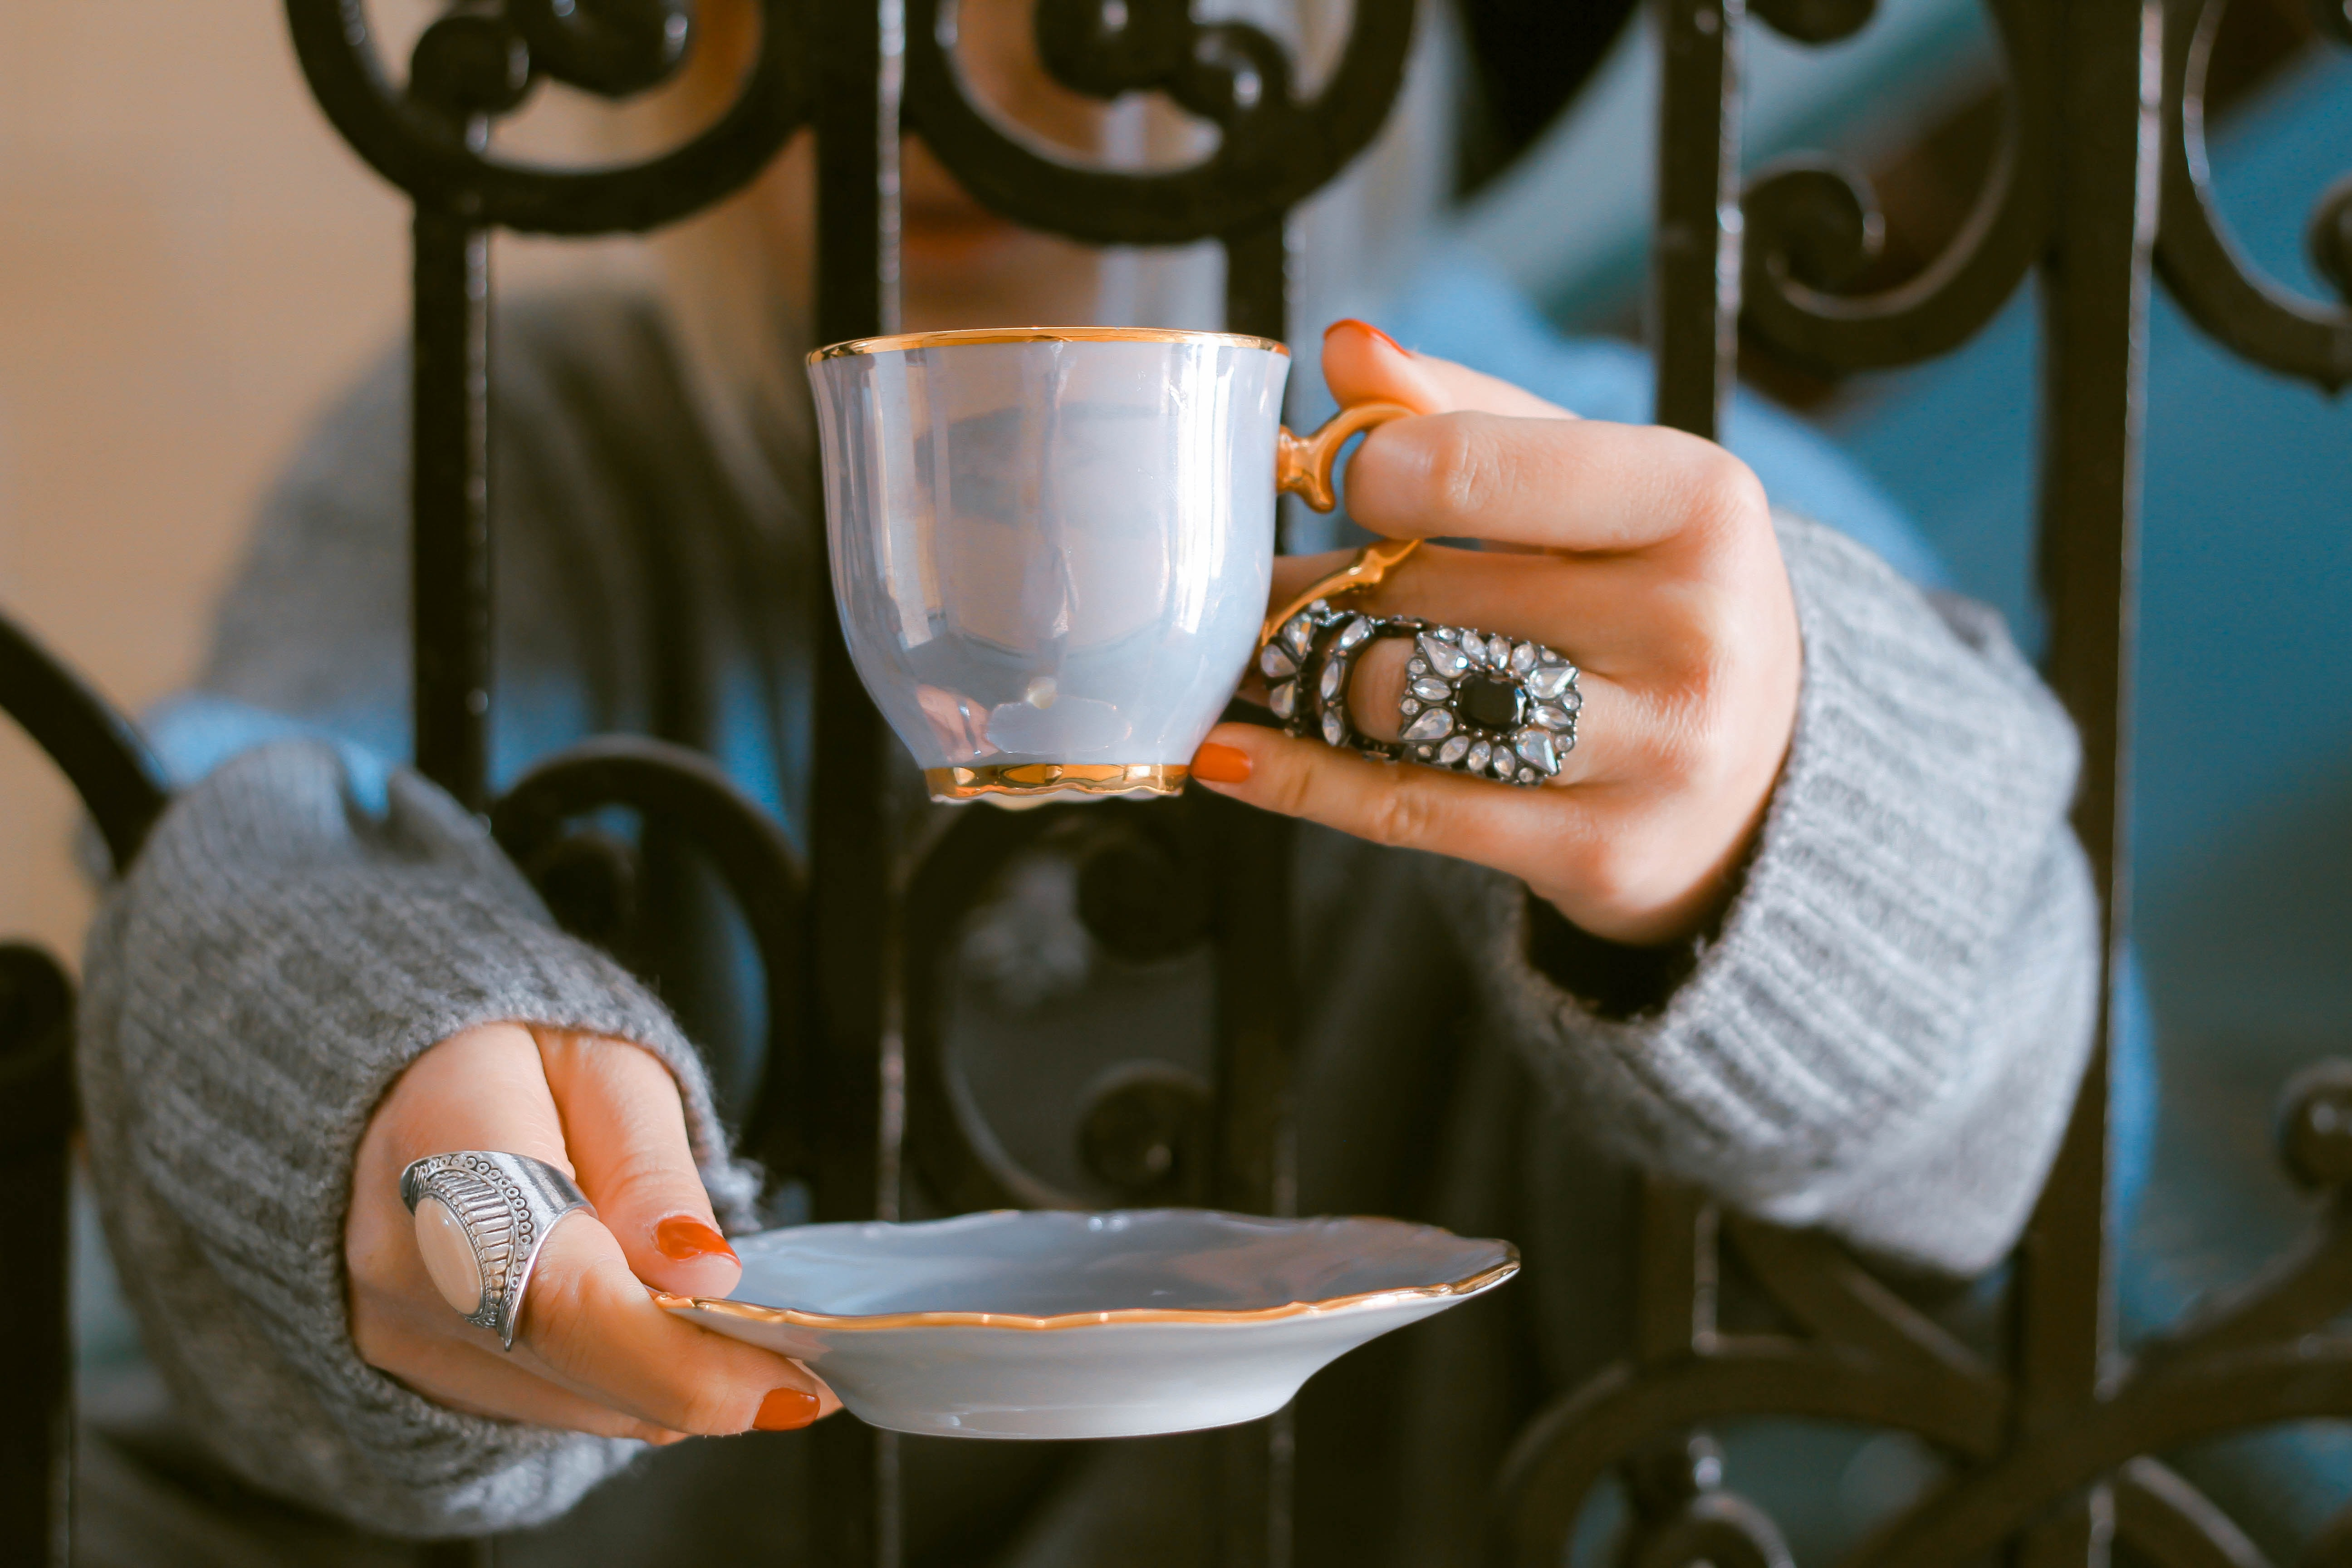 A woman wearing a grey oversized sweater and rings holding a blue ceramic cup and saucer while leaning on a gate in London